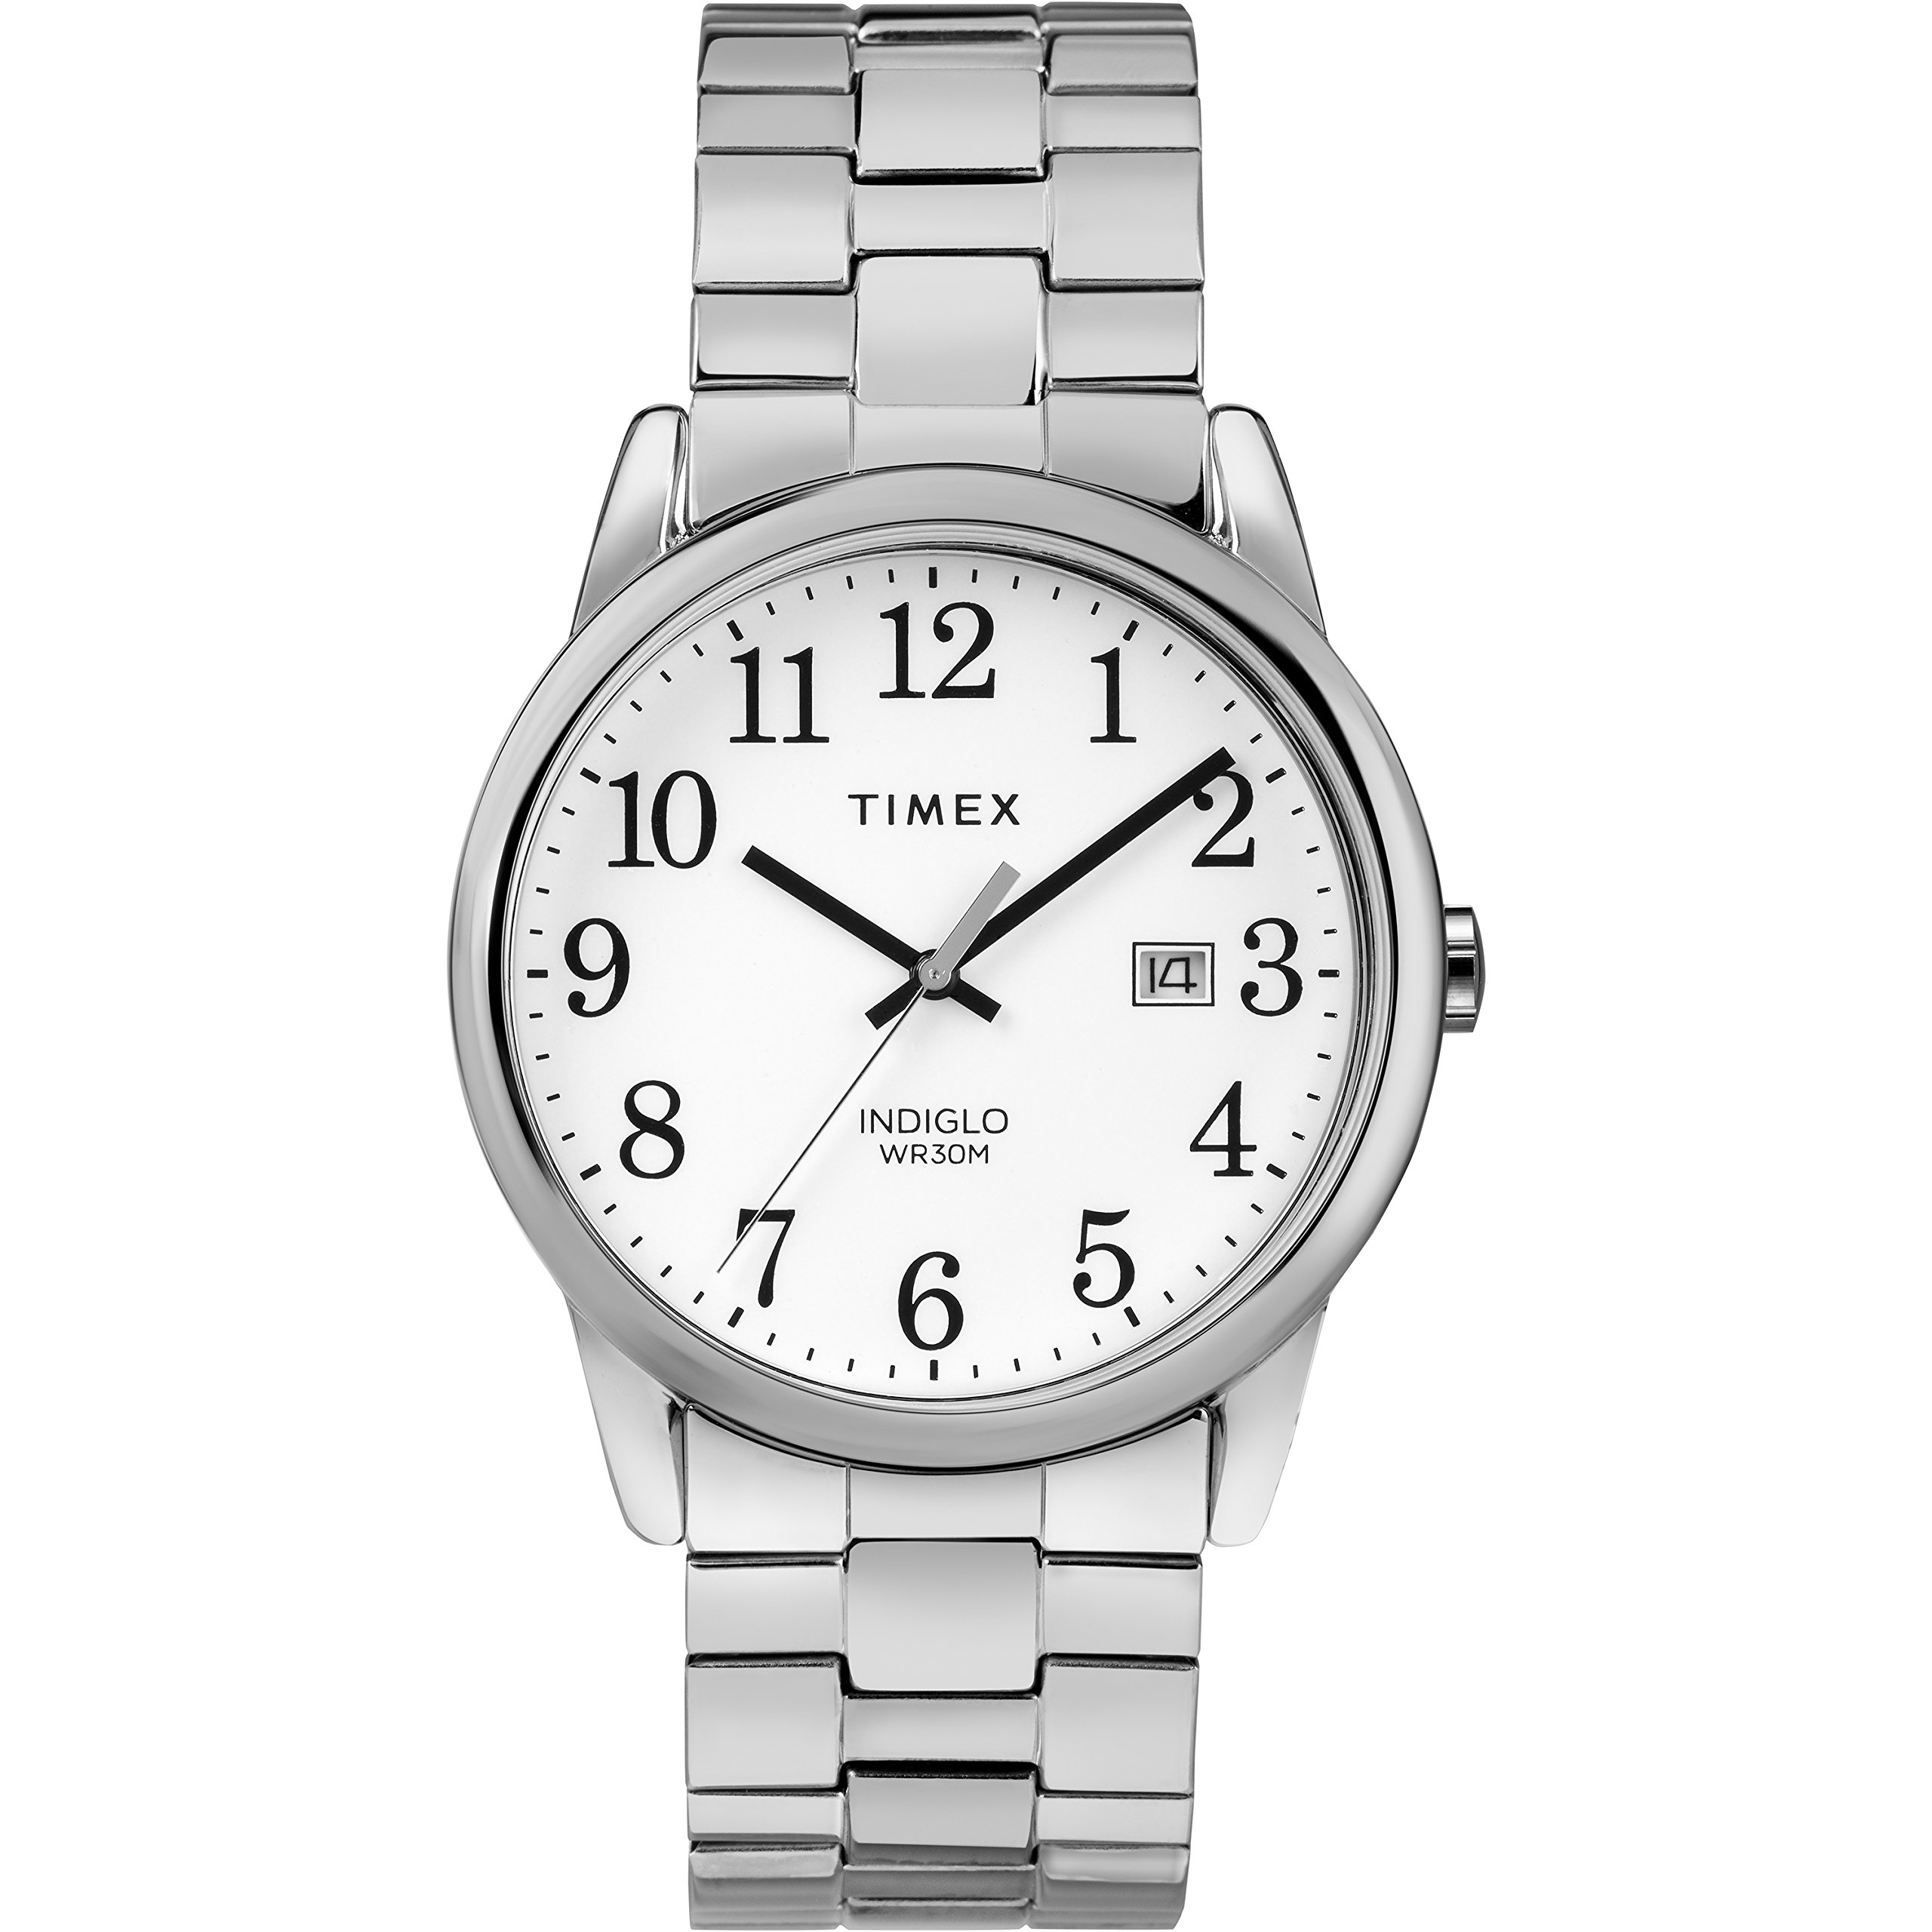 Timex Men's TW2R58400 Easy Reader 38mm Silver-Tone Stainless Steel Expansion Band Watch by Timex (Image #1)